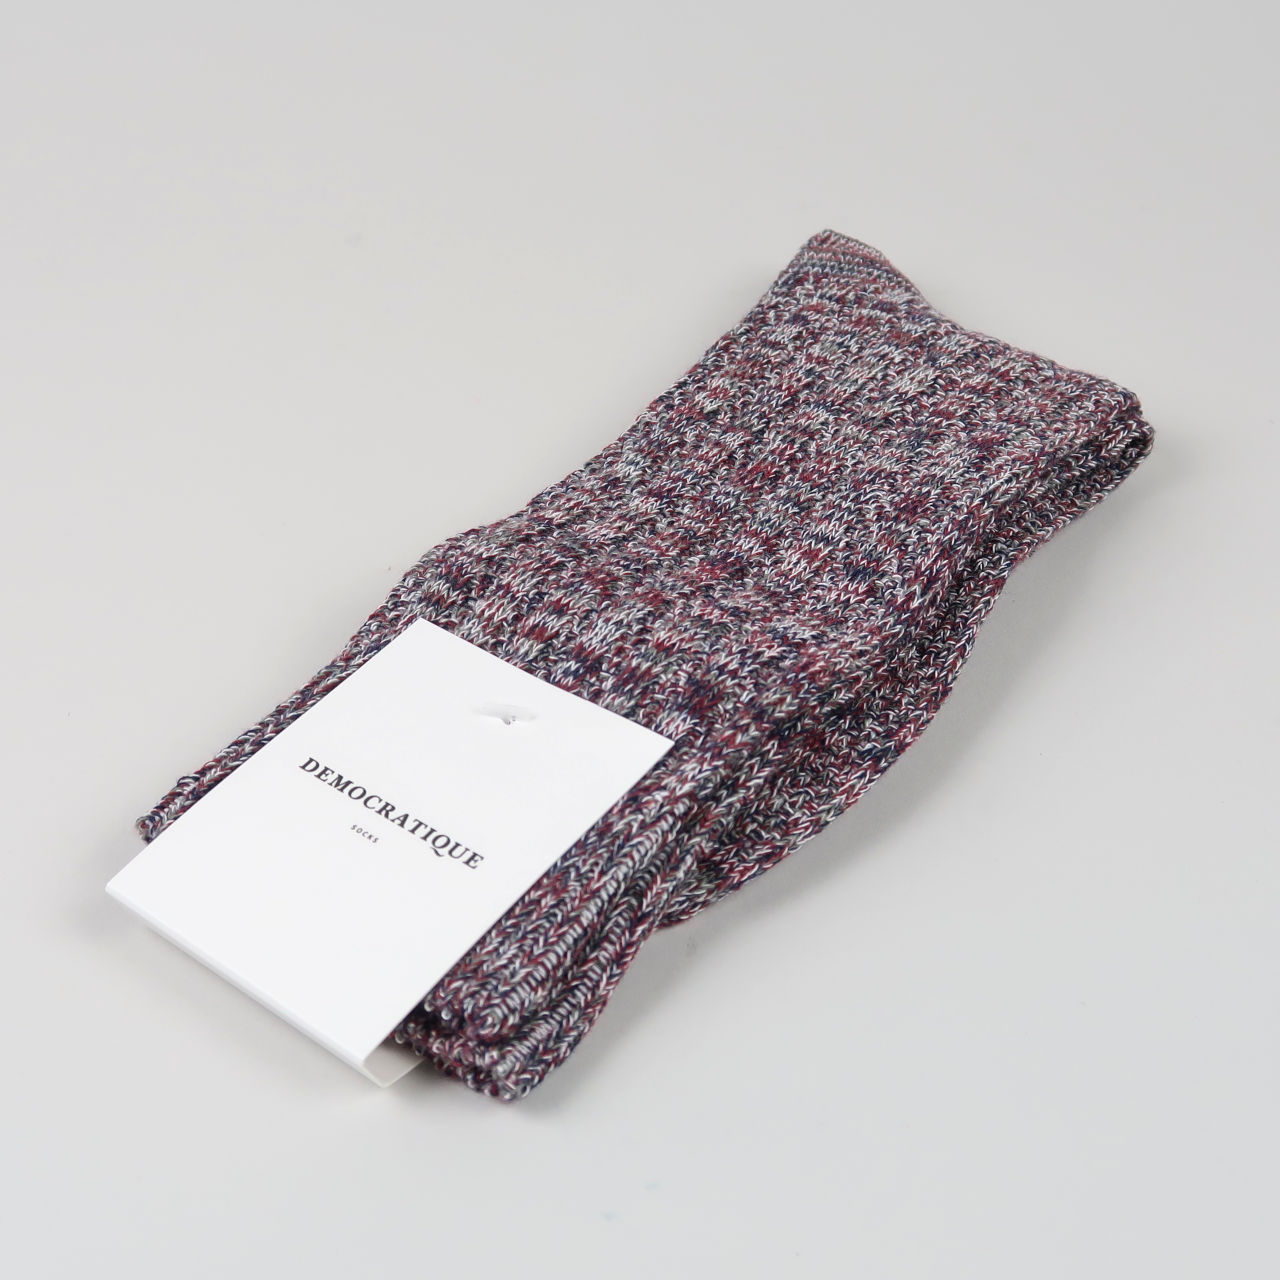 Men's Socks - Relax Schooner Knit - Dark Plum/Off White/Grass Green